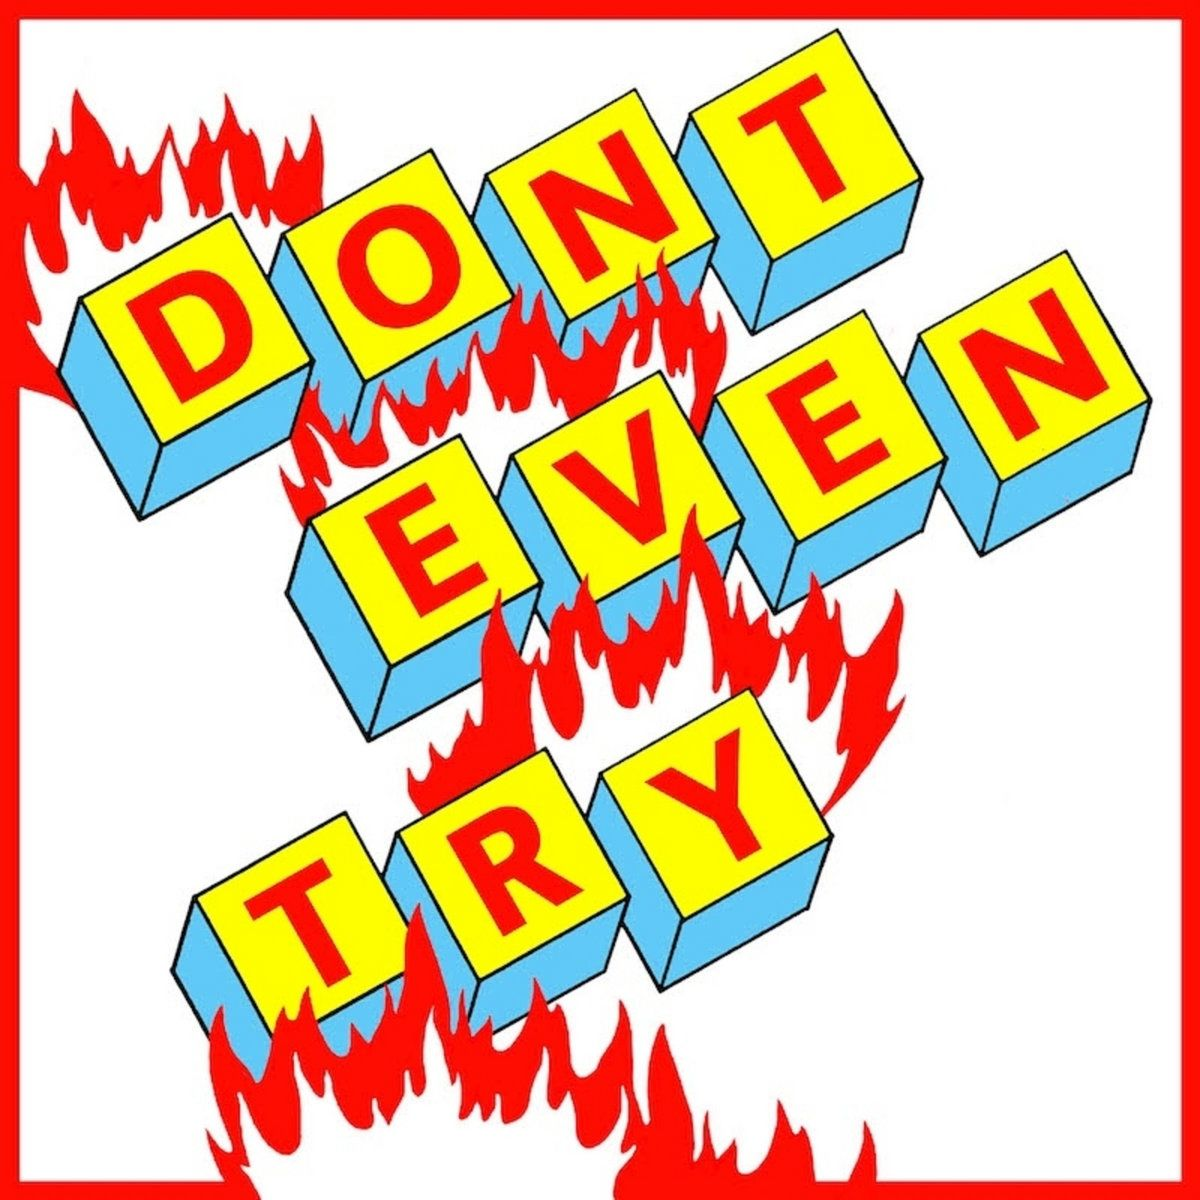 Yuksek & JD Samson - Don't Even Try